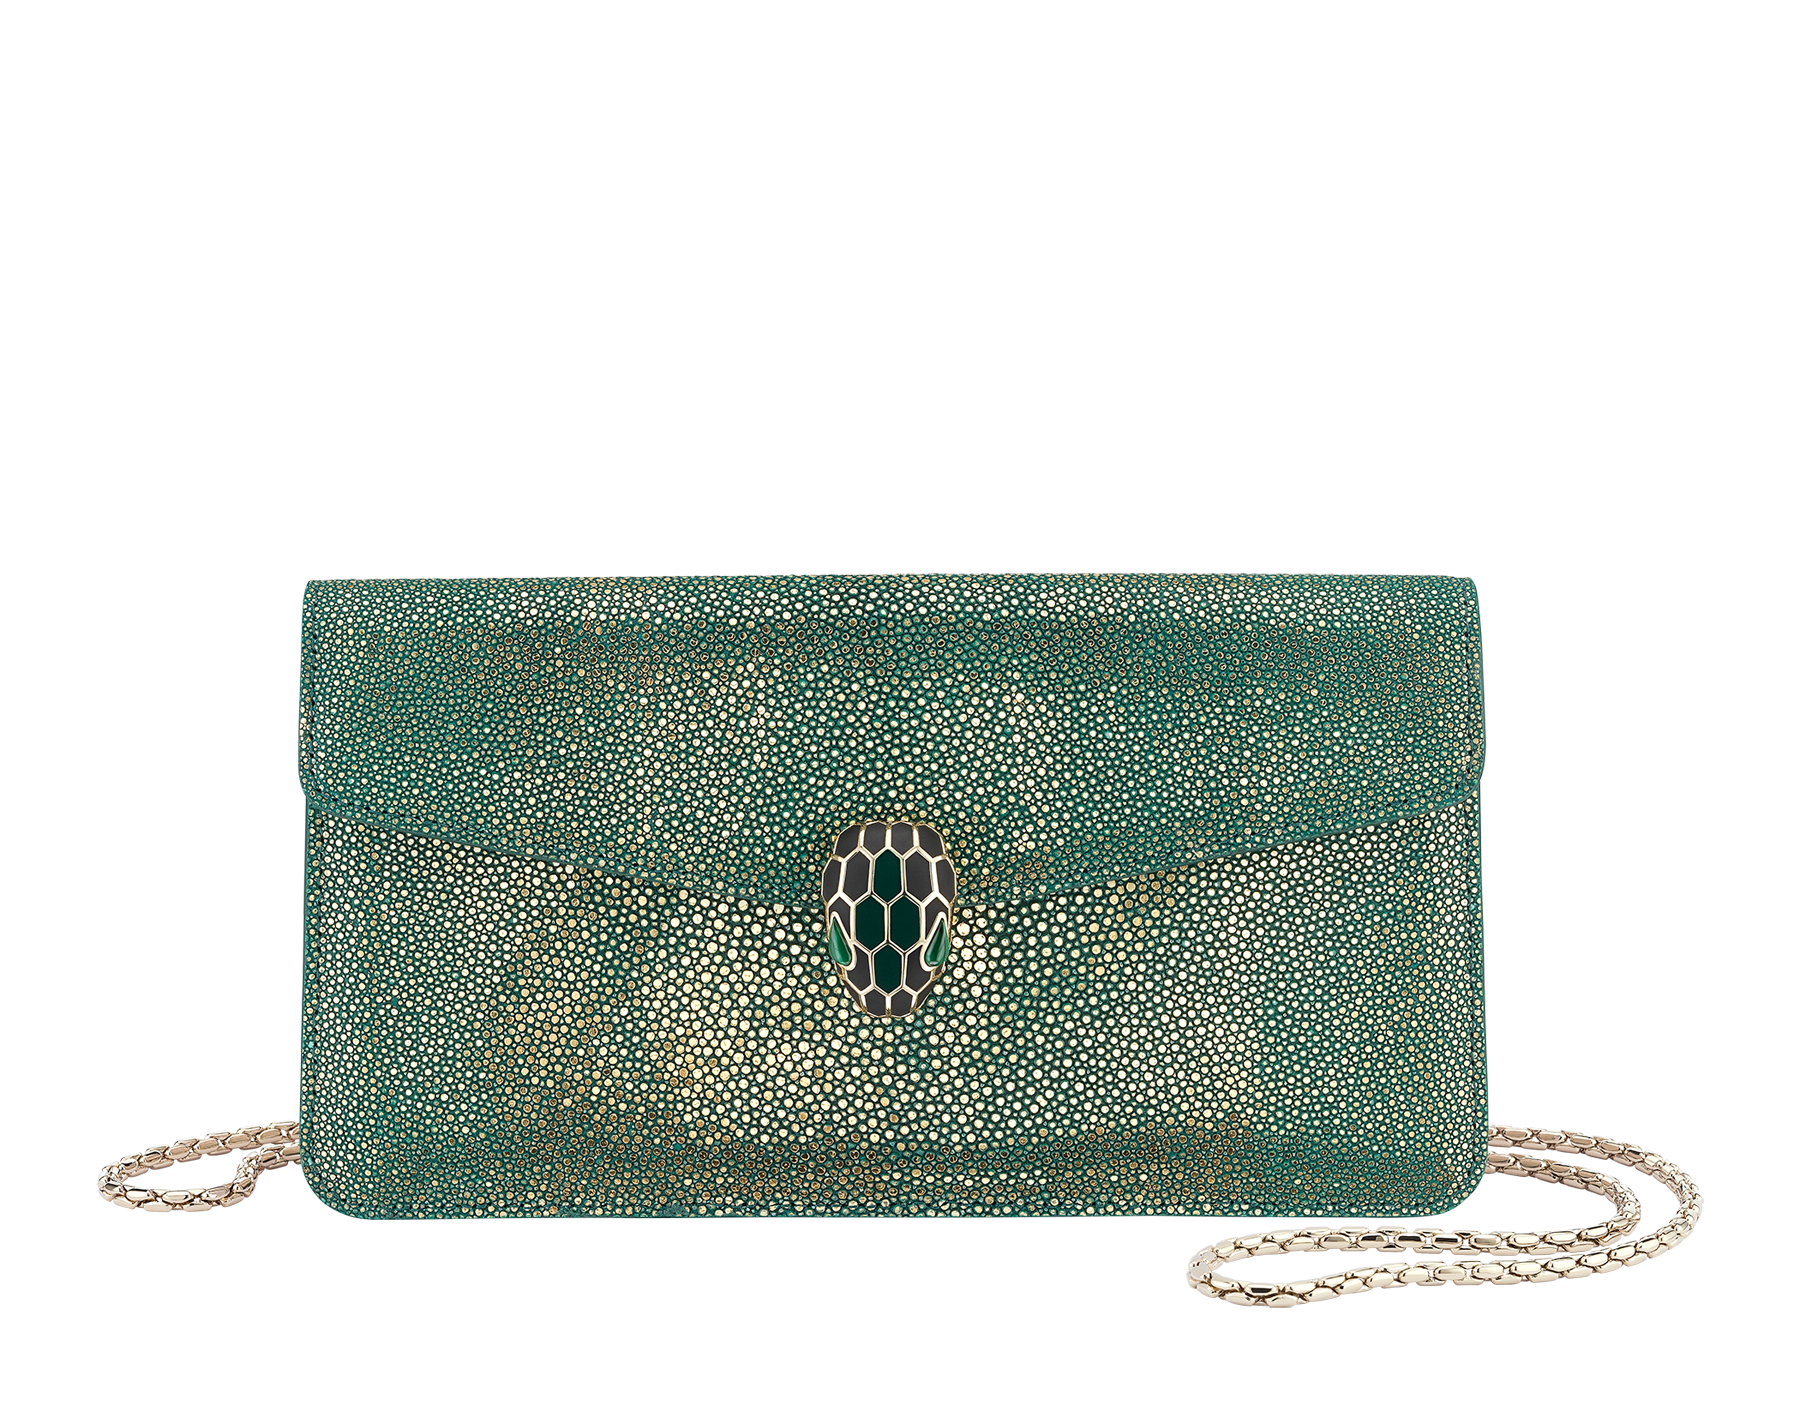 """""""Serpenti Forever"""" shoulder bag in golden emerald crystal galuchat skin. Iconic snake head closure in light gold plated brass enriched with black and forest emerald enamel and green malachite eyes. Special Edition. 486-CG image 1"""